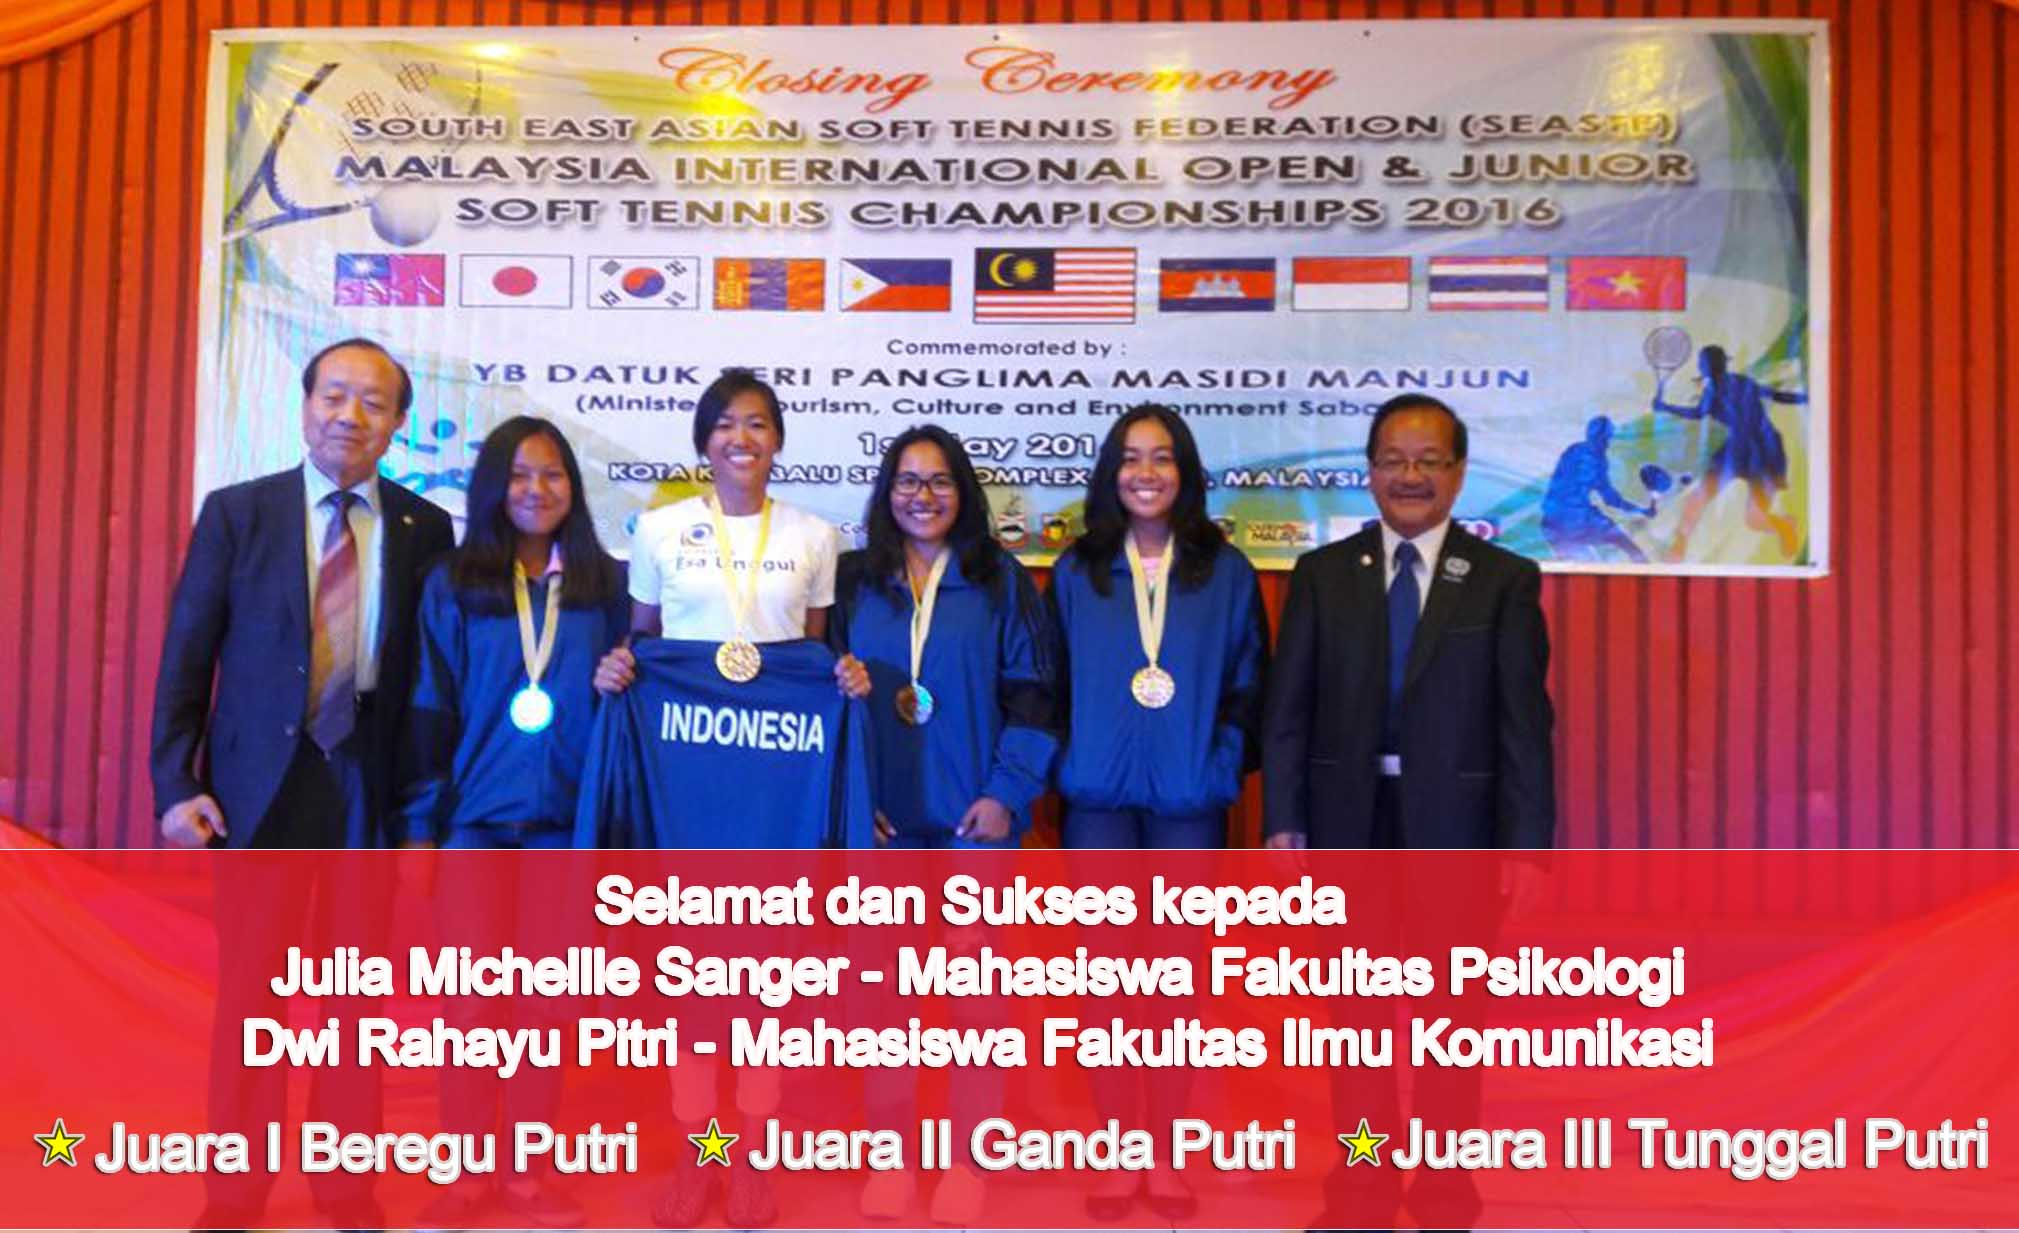 Sout East Asian Soft Tennis Federation (SEASTF) Malaysia International Open & Junior Soft Tennis Championships 2016